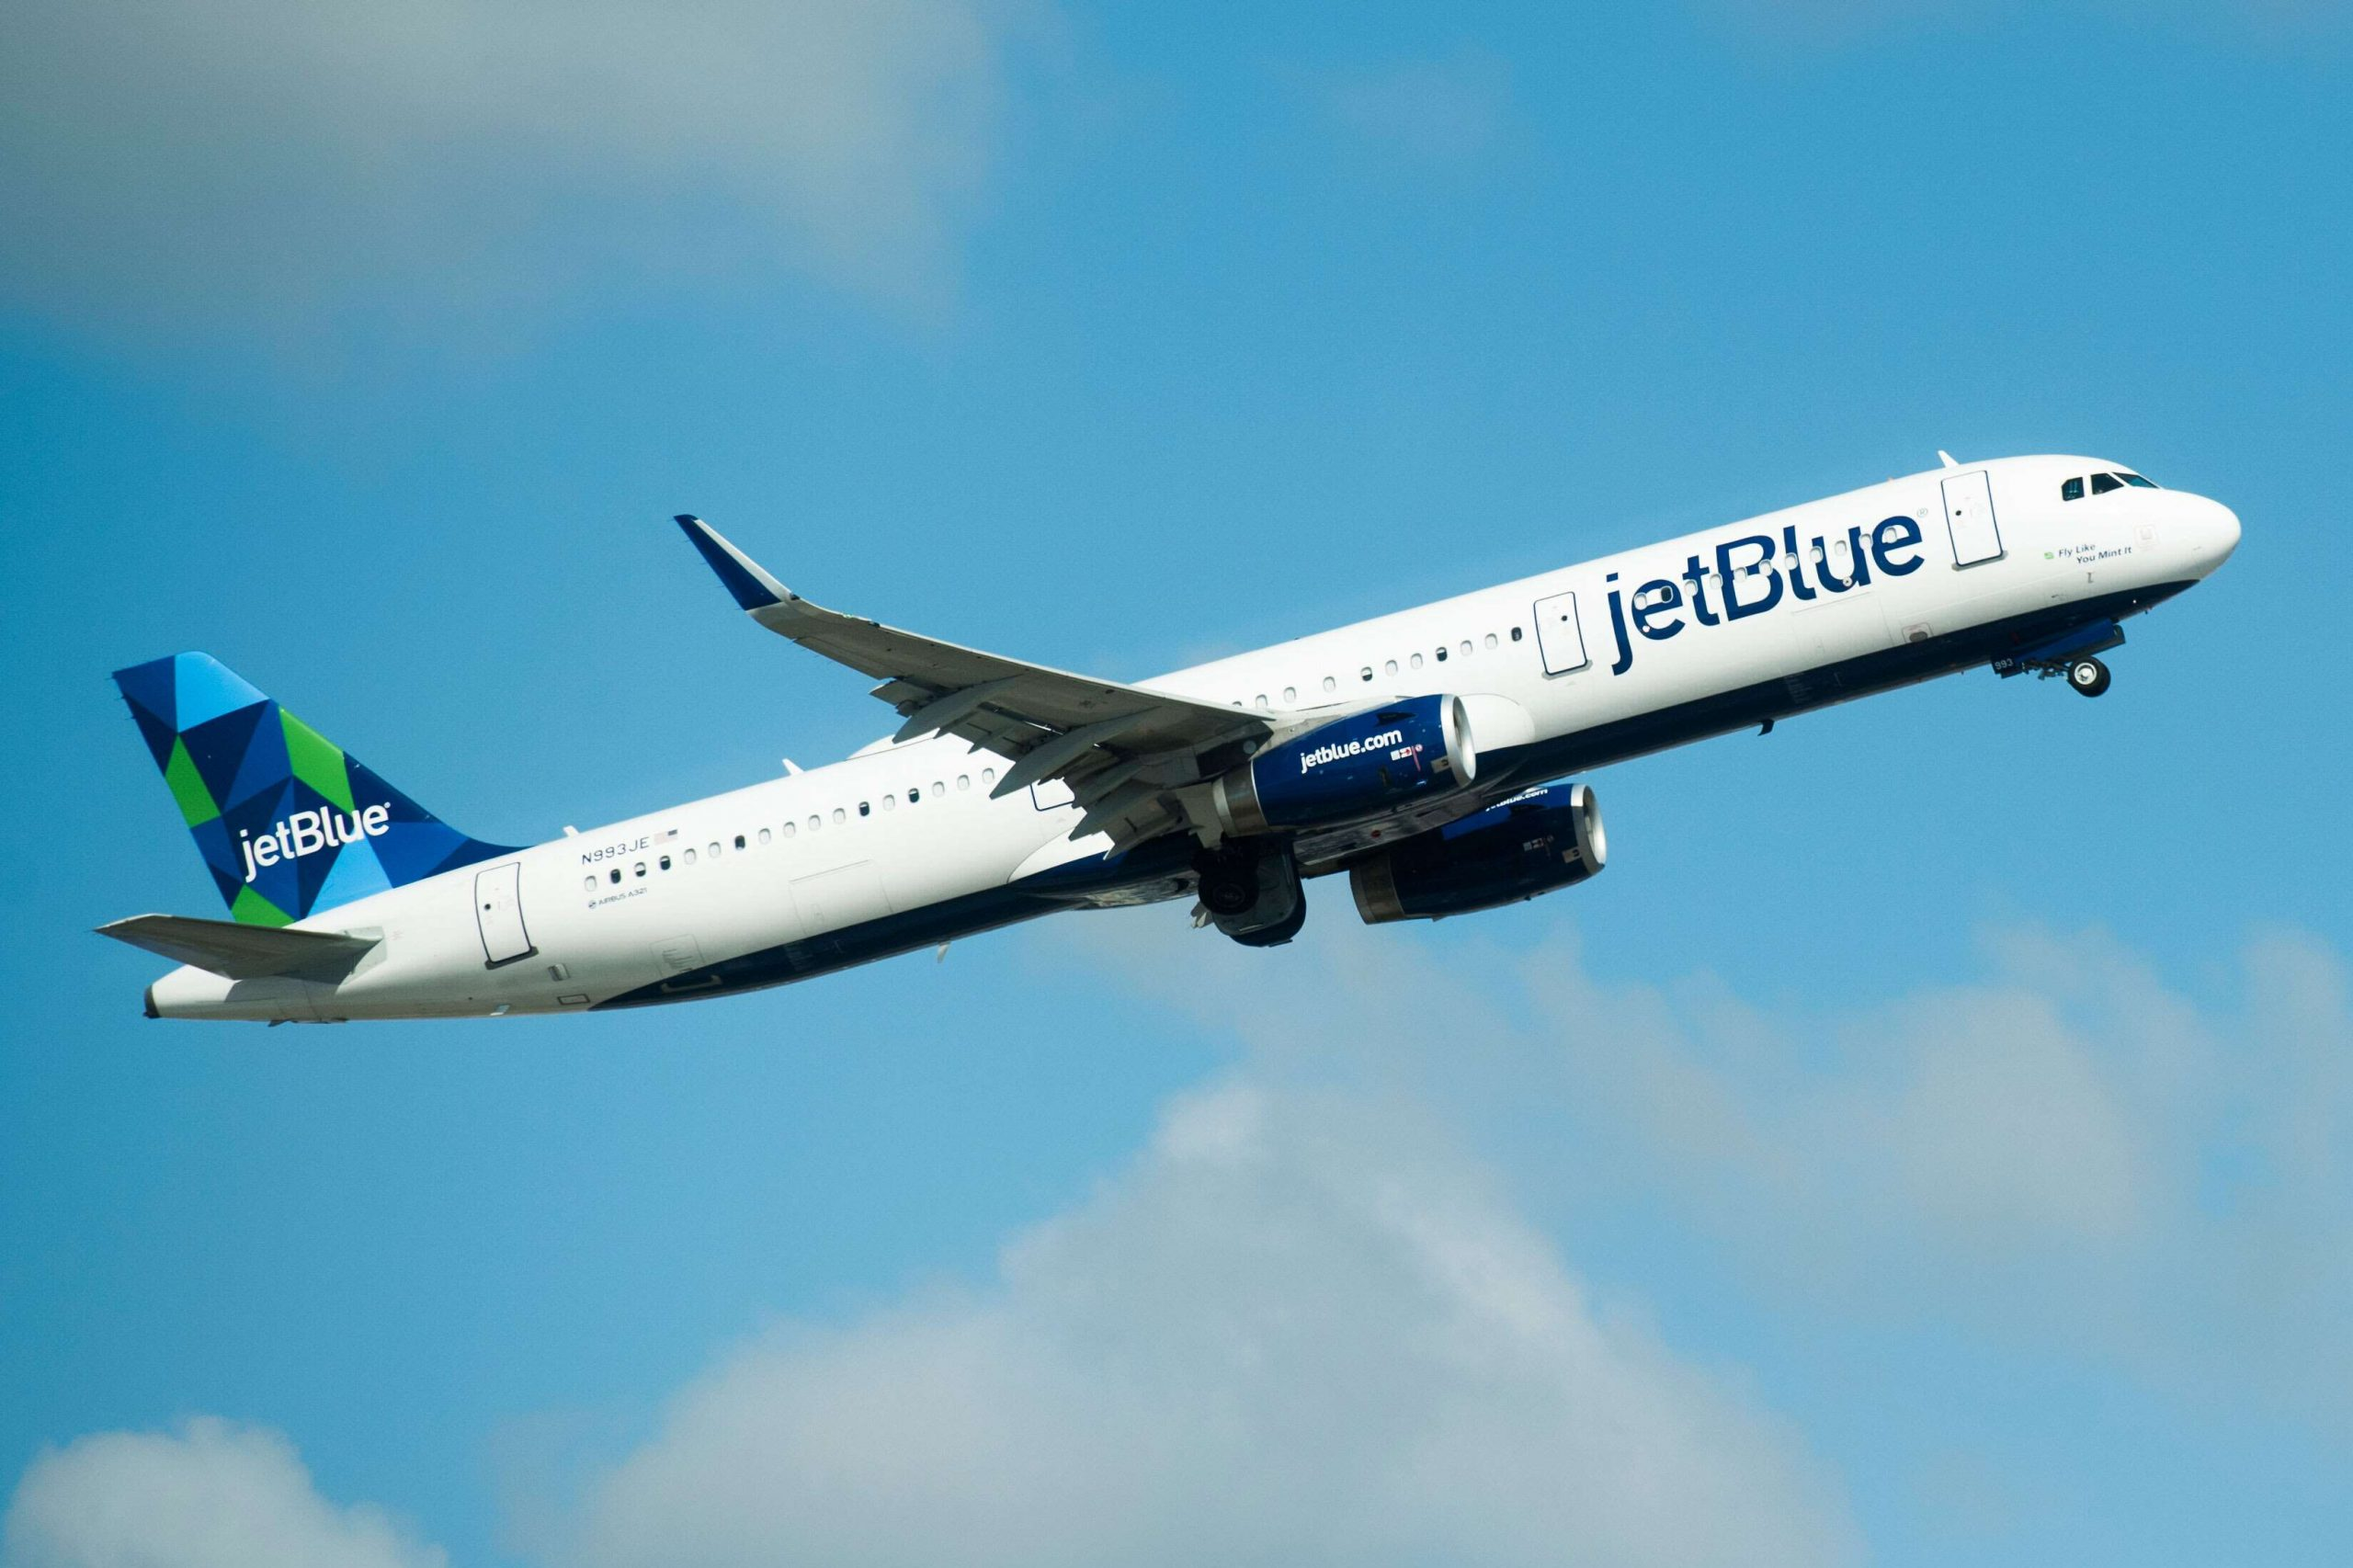 JetBlue Adds 25 Additional Flights from the New York Area to Florida, California, and Top VFR Markets in the Caribbean Over Peak Thanksgiving Travel Dates